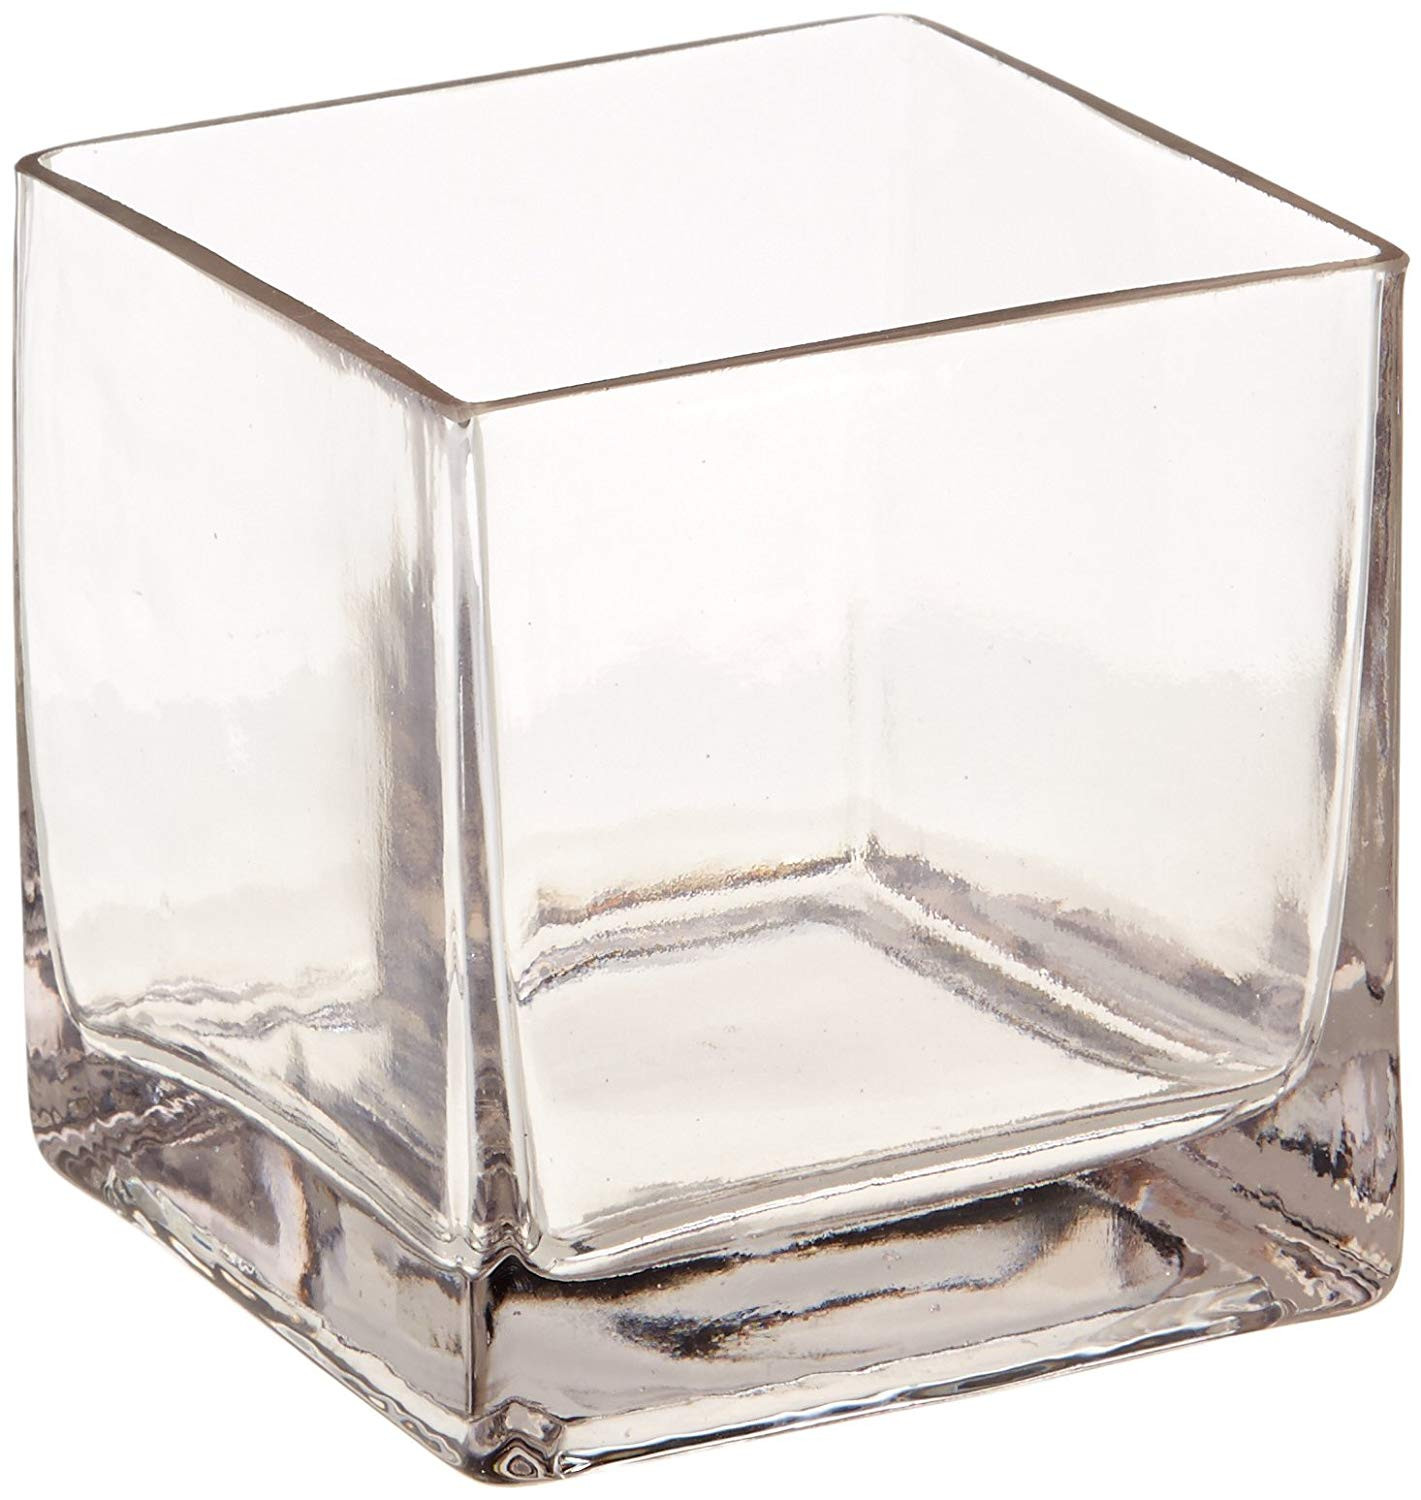 bubble glass bud vase of amazon com 12piece 4 square crystal clear glass vase home kitchen within 71 jezfmvnl sl1500